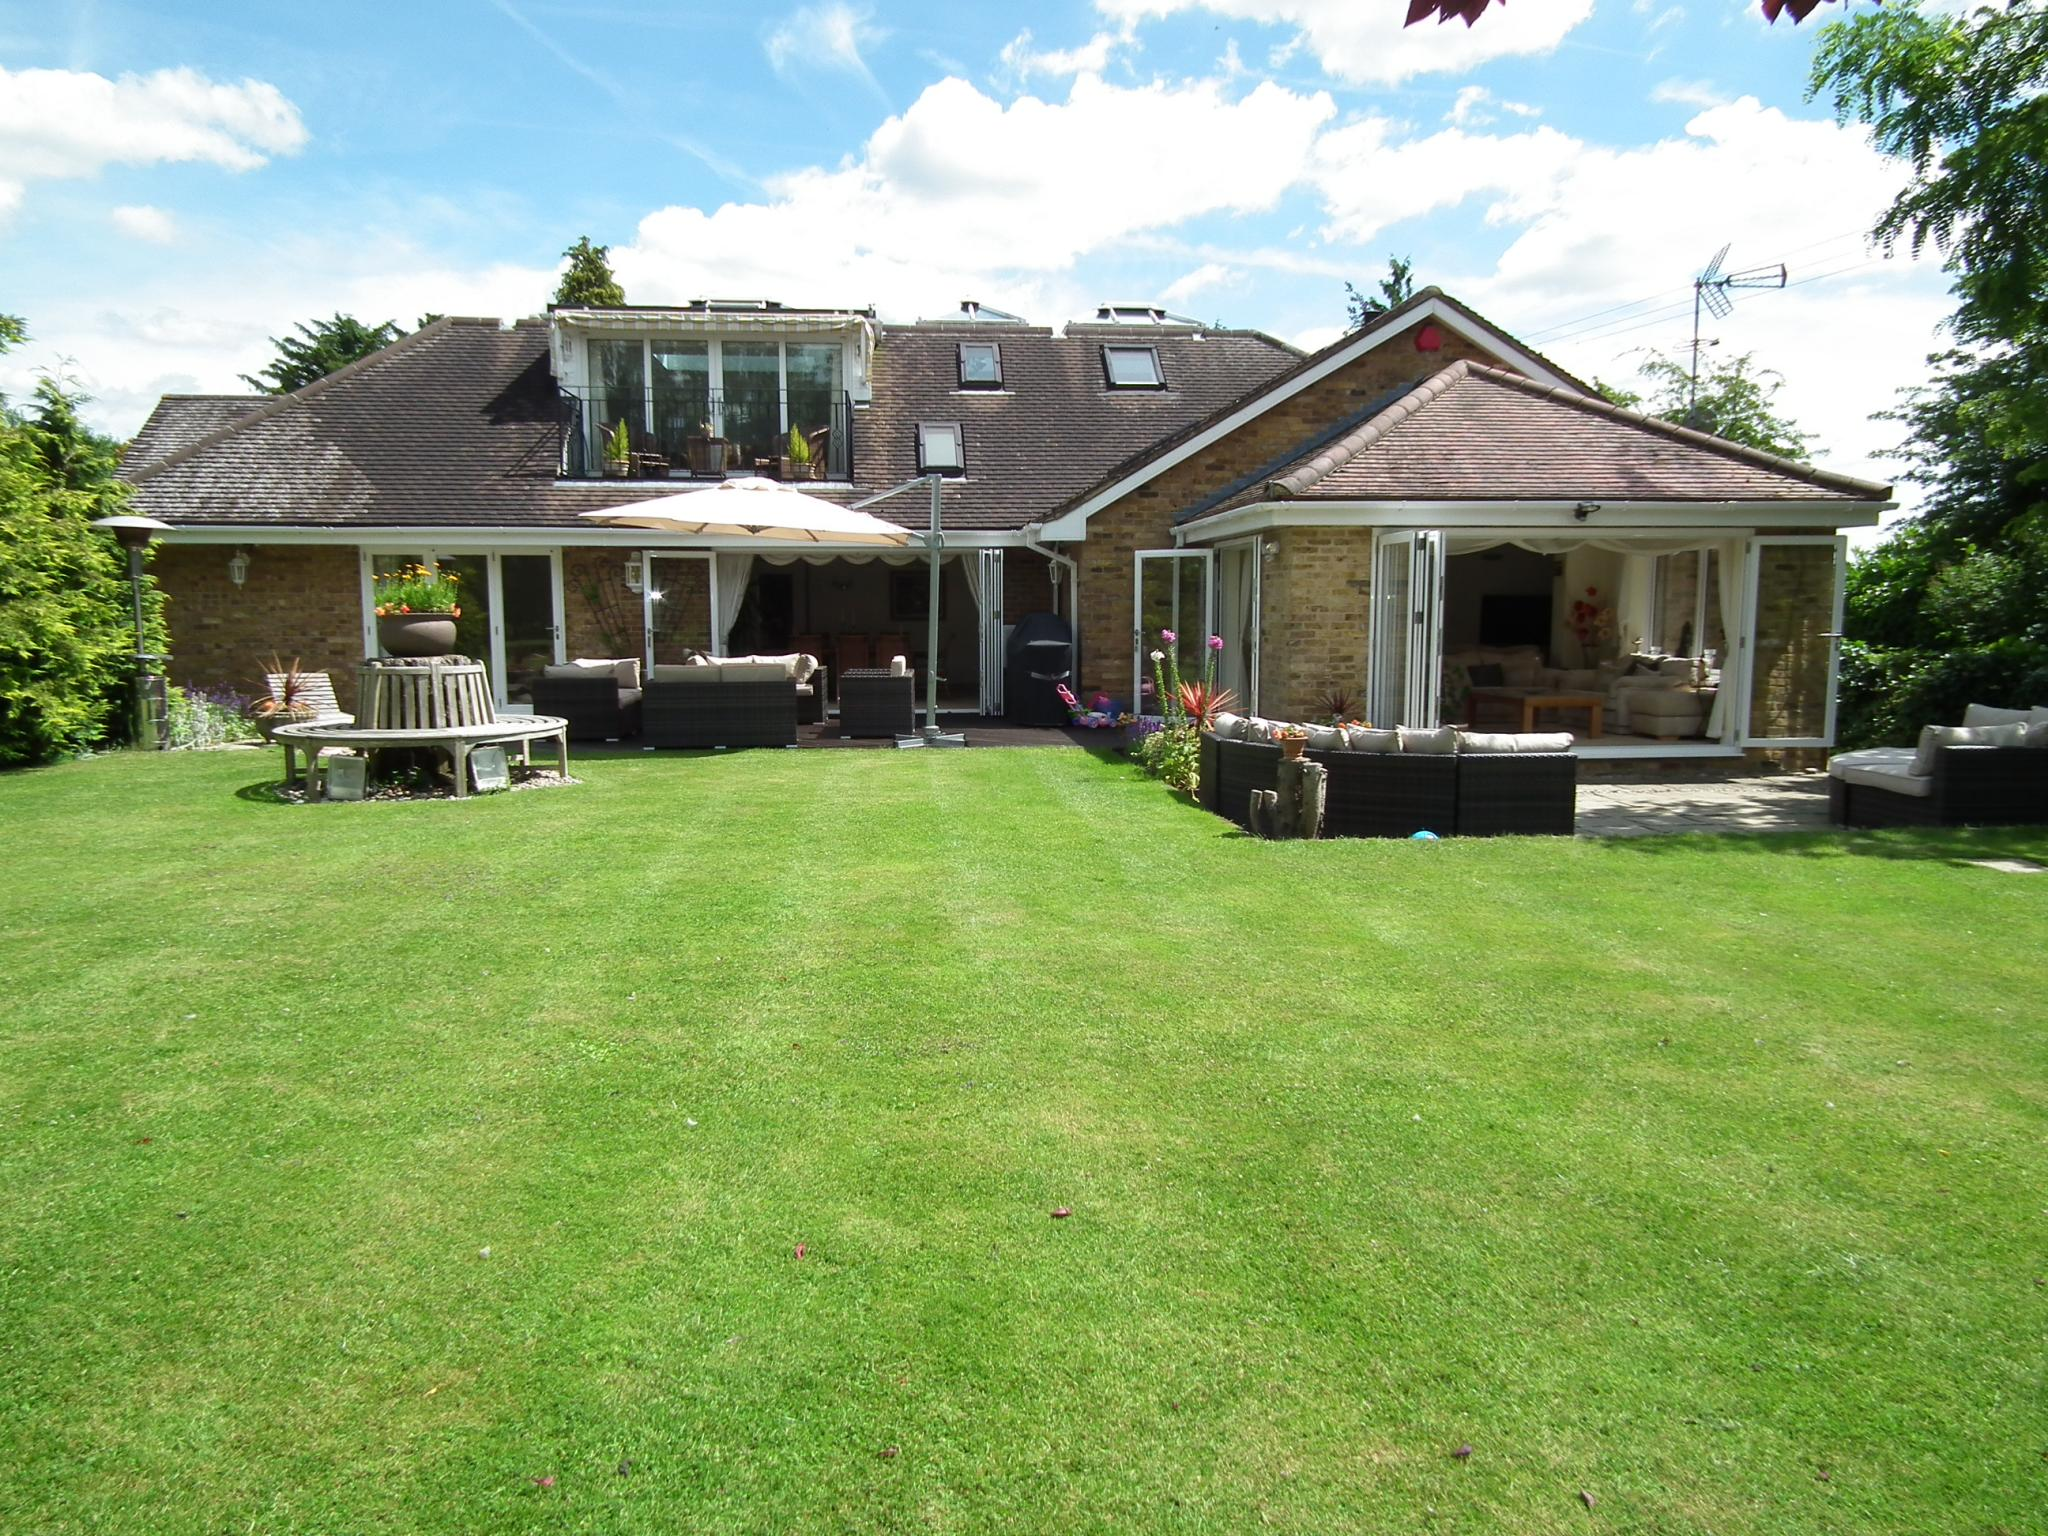 5 bedroom detached bungalow For Sale in Little Berkhamsted - Property photograph